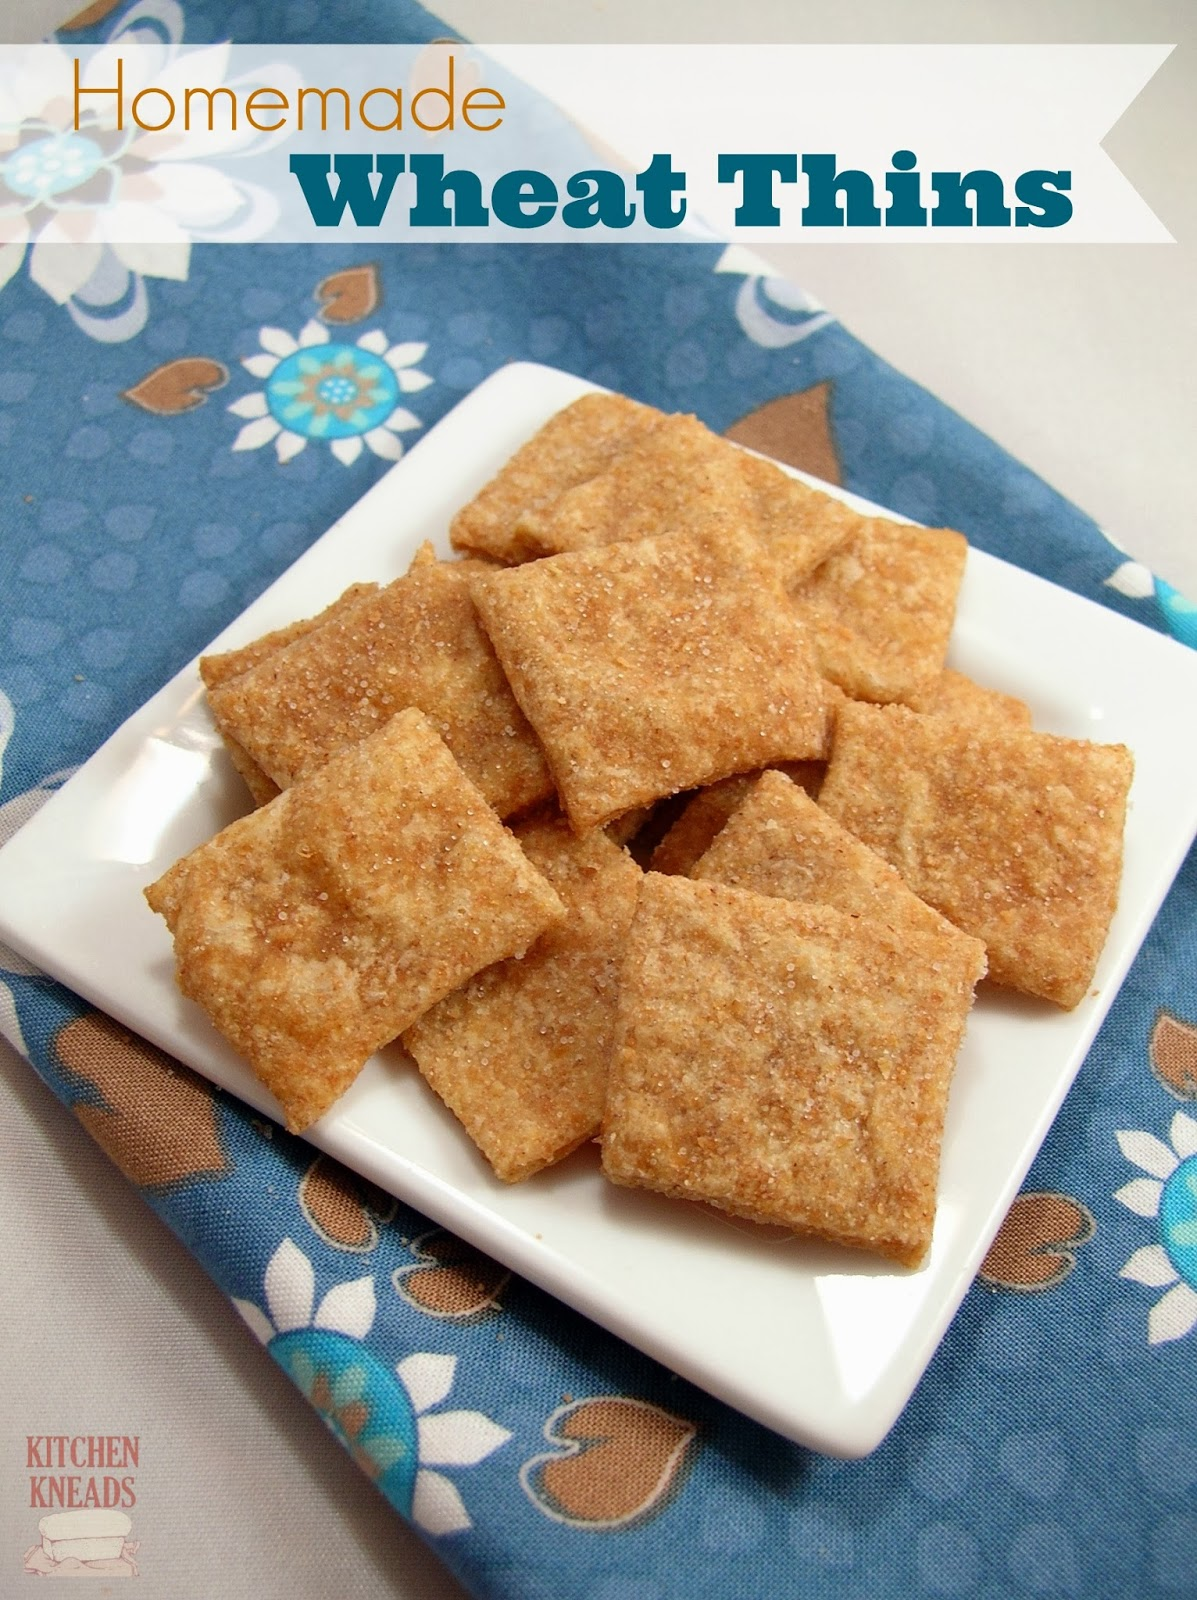 Homemade Wheat Thins Kitchen Kneads